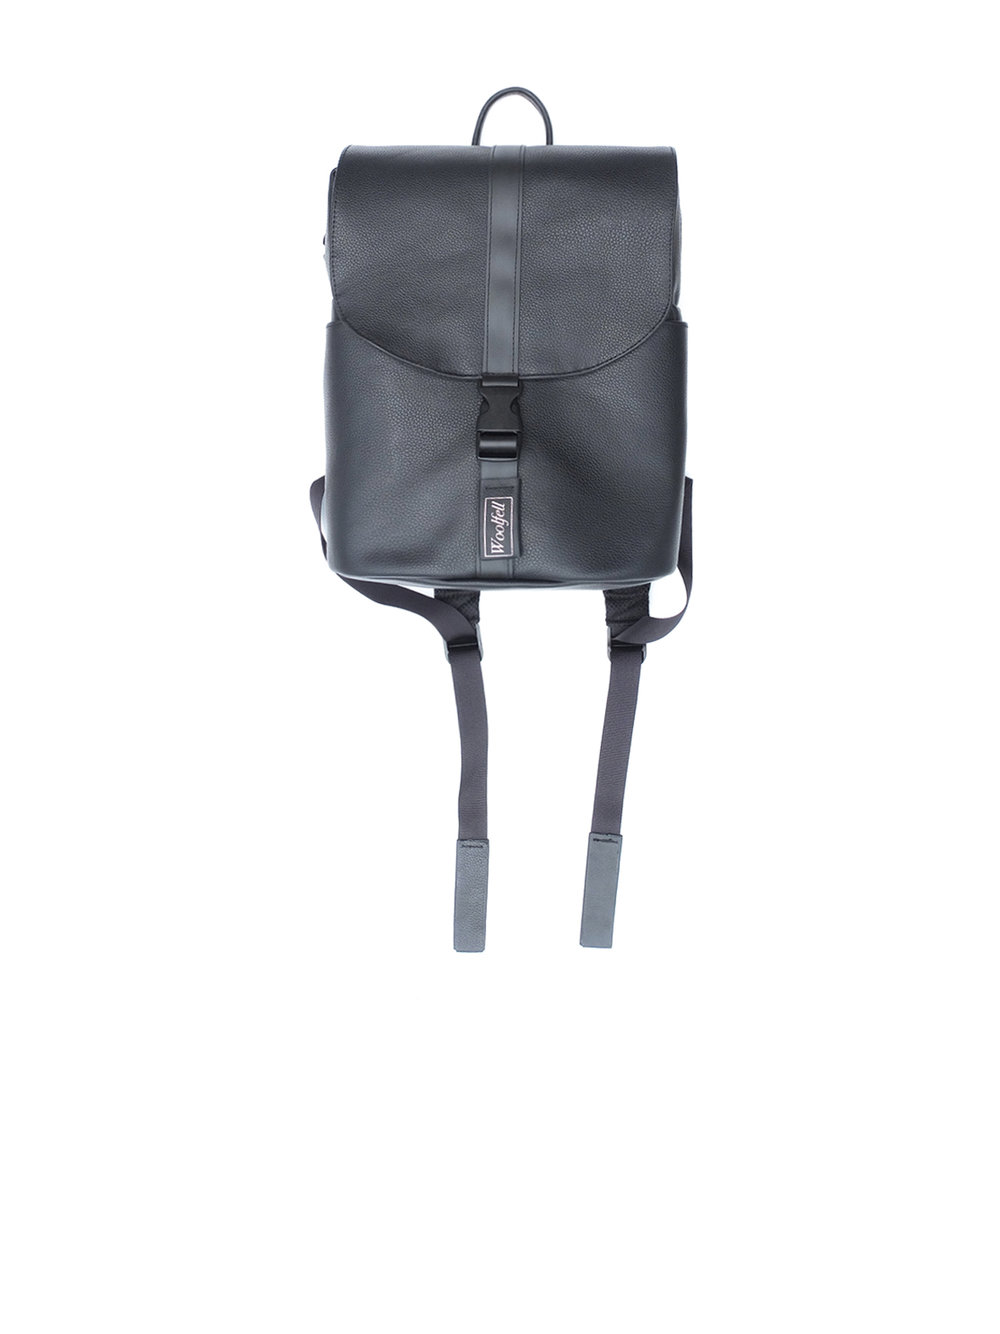 Fugato leather backpack - 280.00$